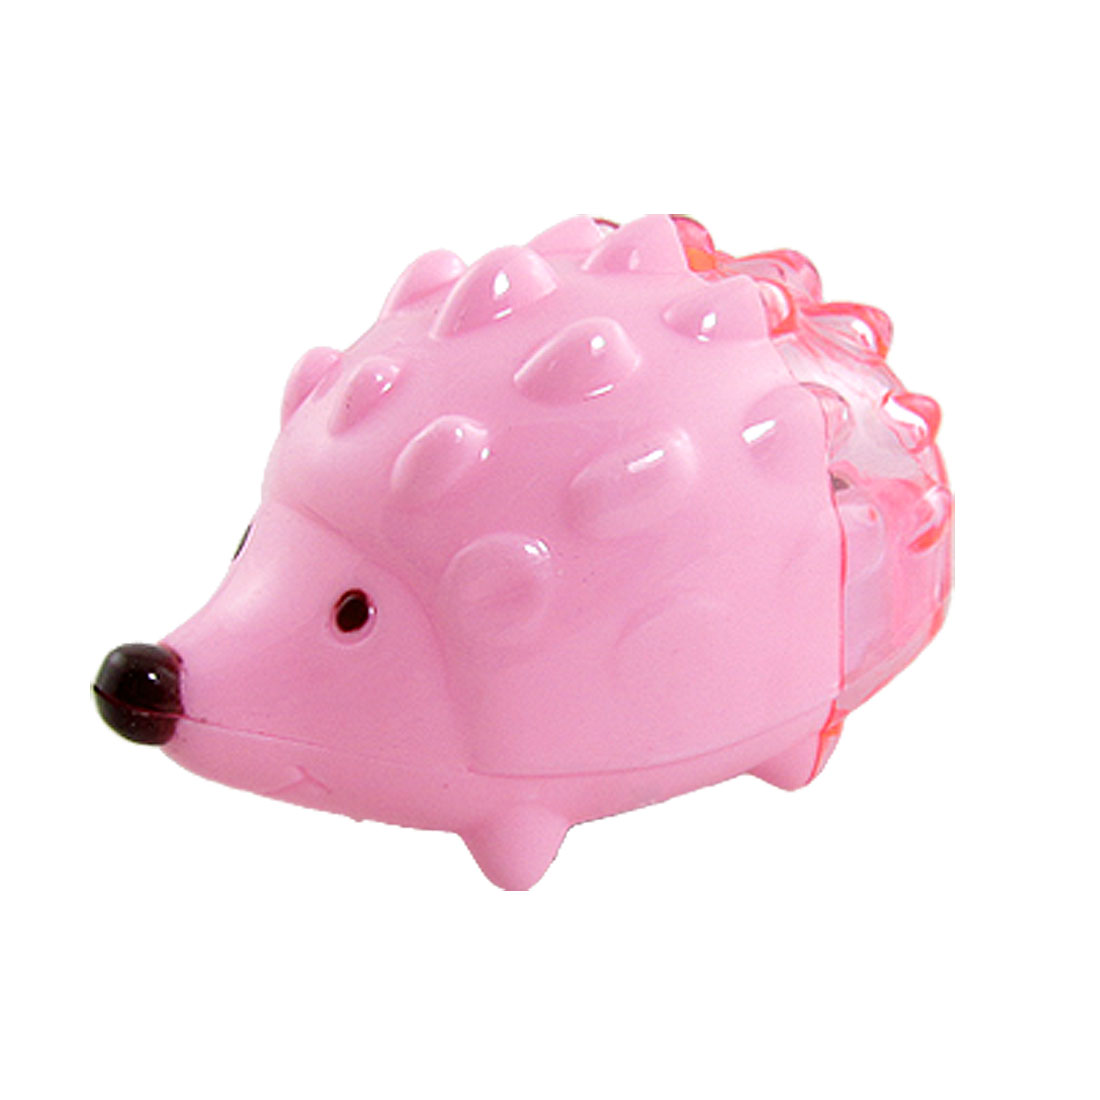 Pink Hedgehog Shaped 8mm Diameter Double Holes Manual Pencil Sharpener